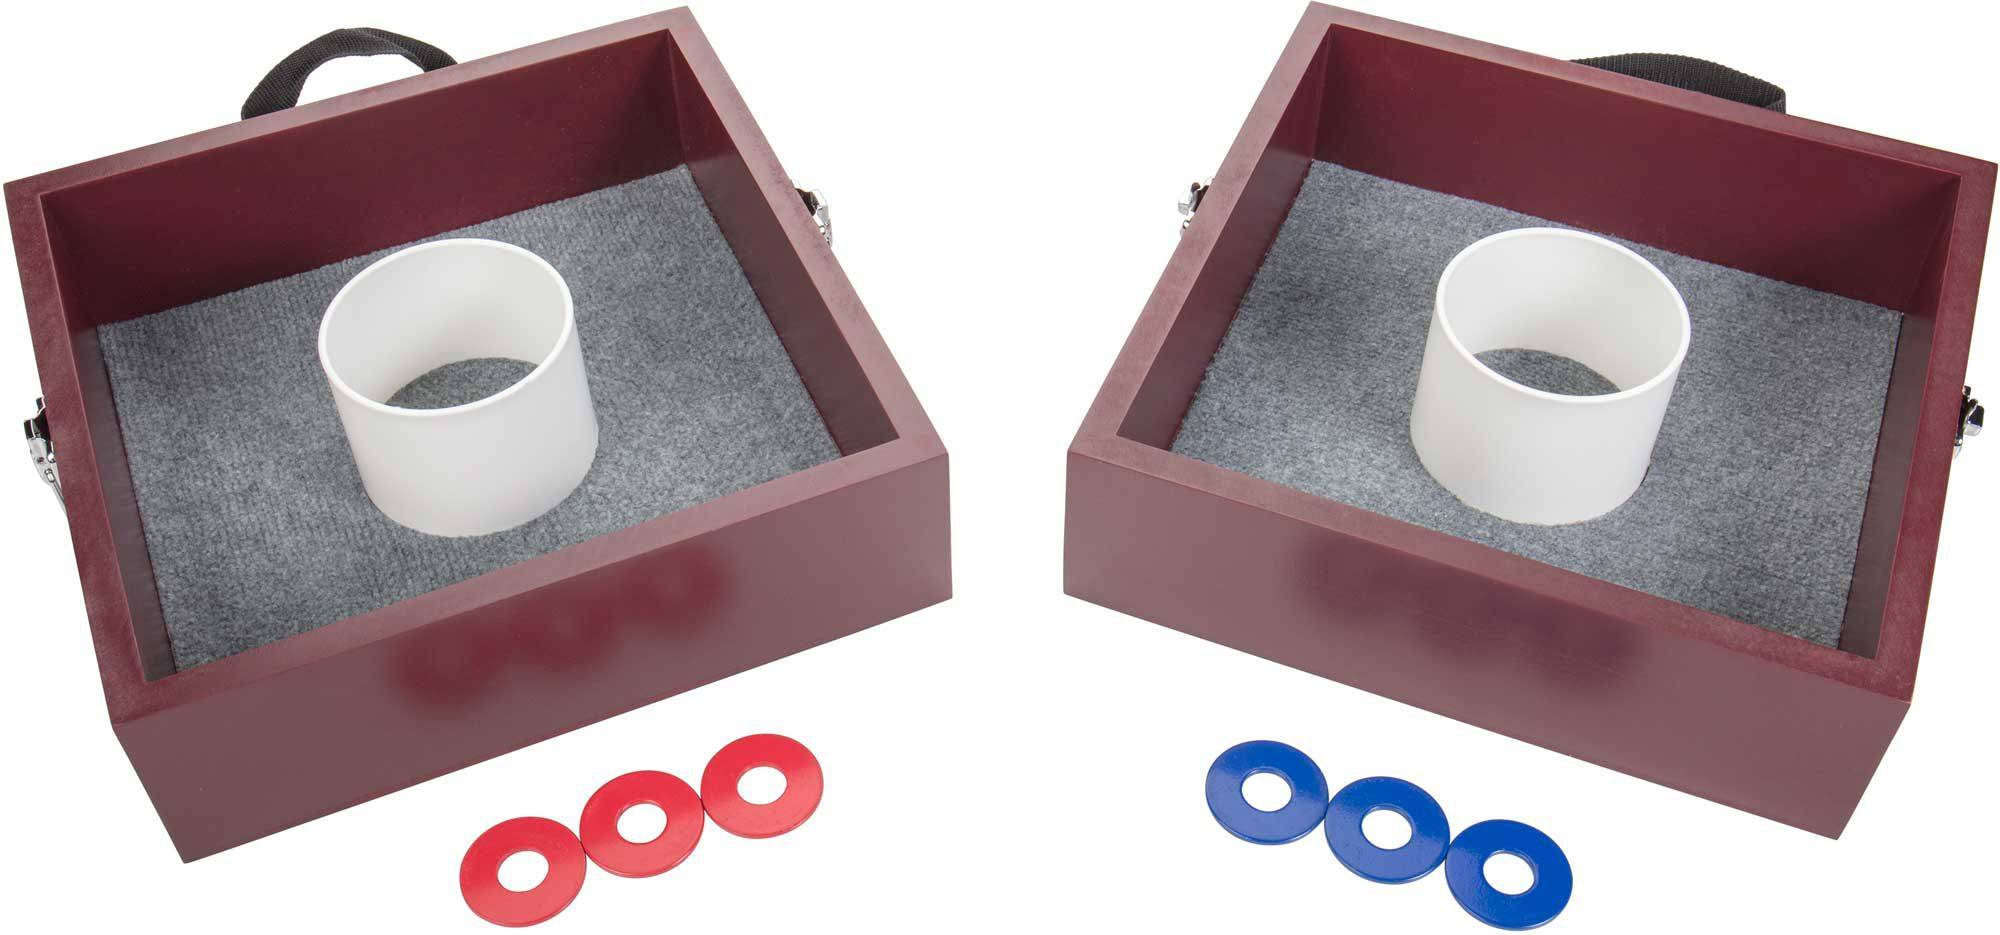 Triumph Tournament Outdoor Washer Toss Game